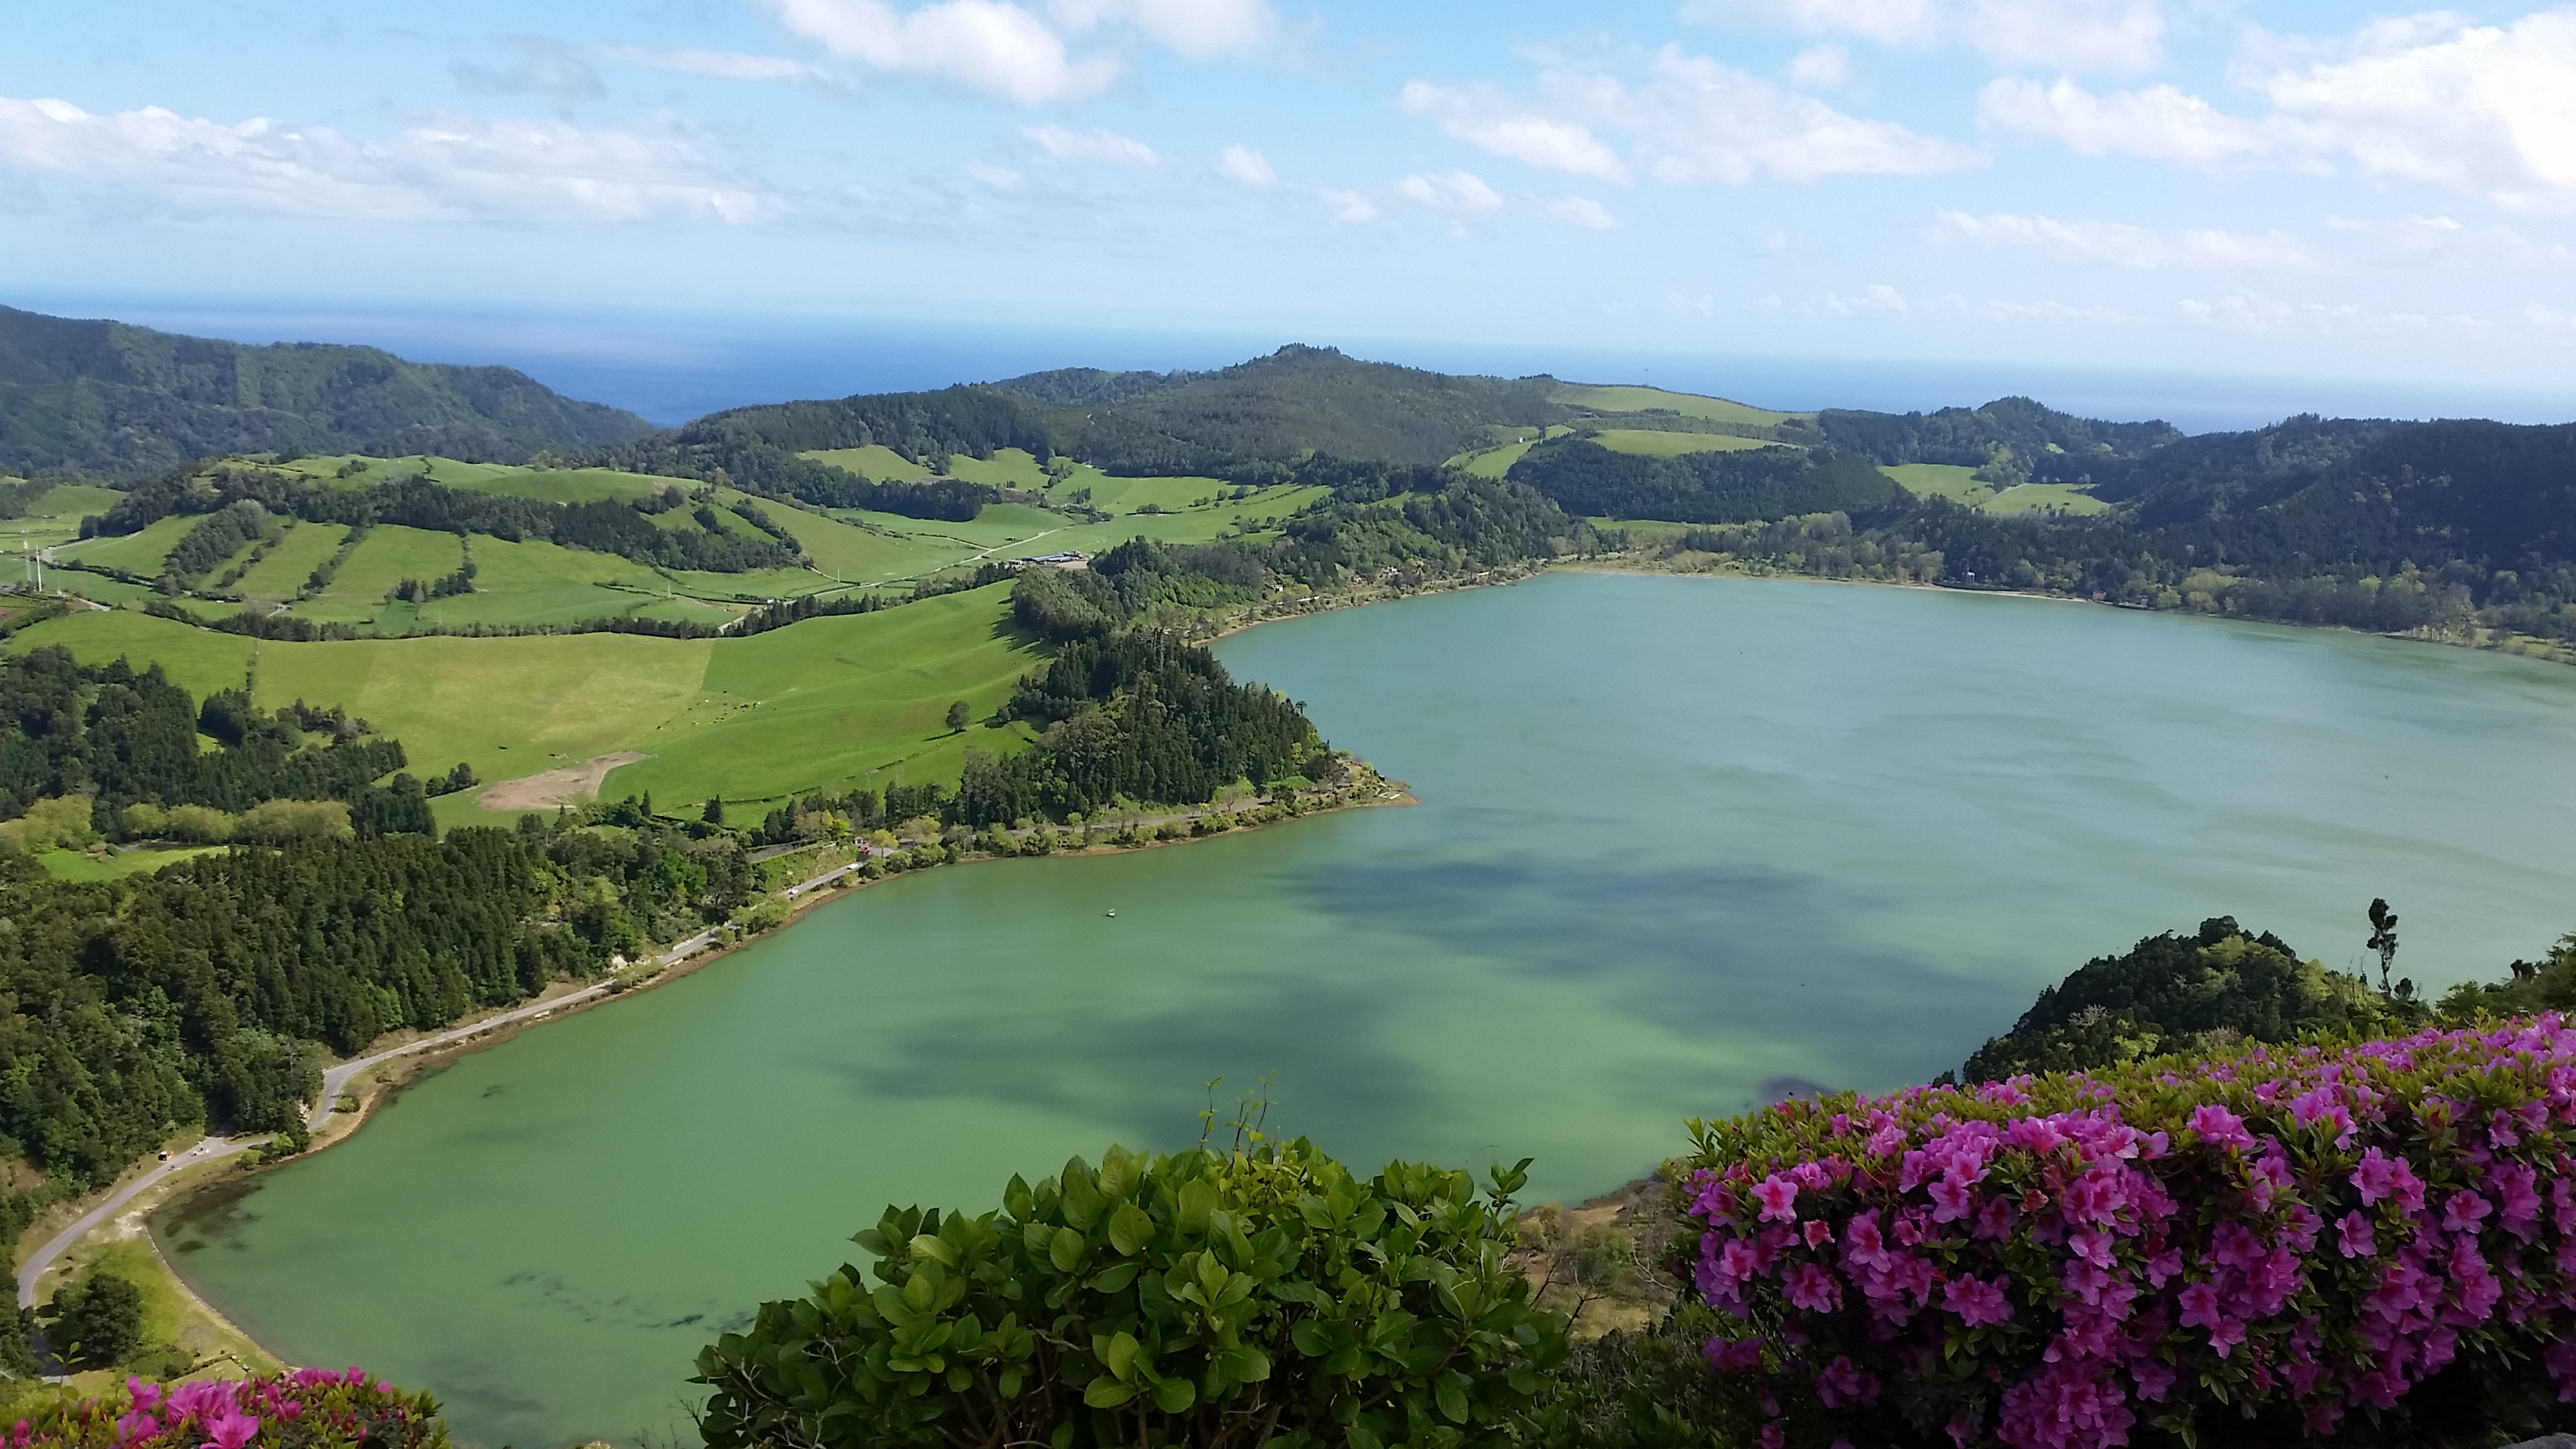 Tour # 5 - Furnas Lake & Hot Springs